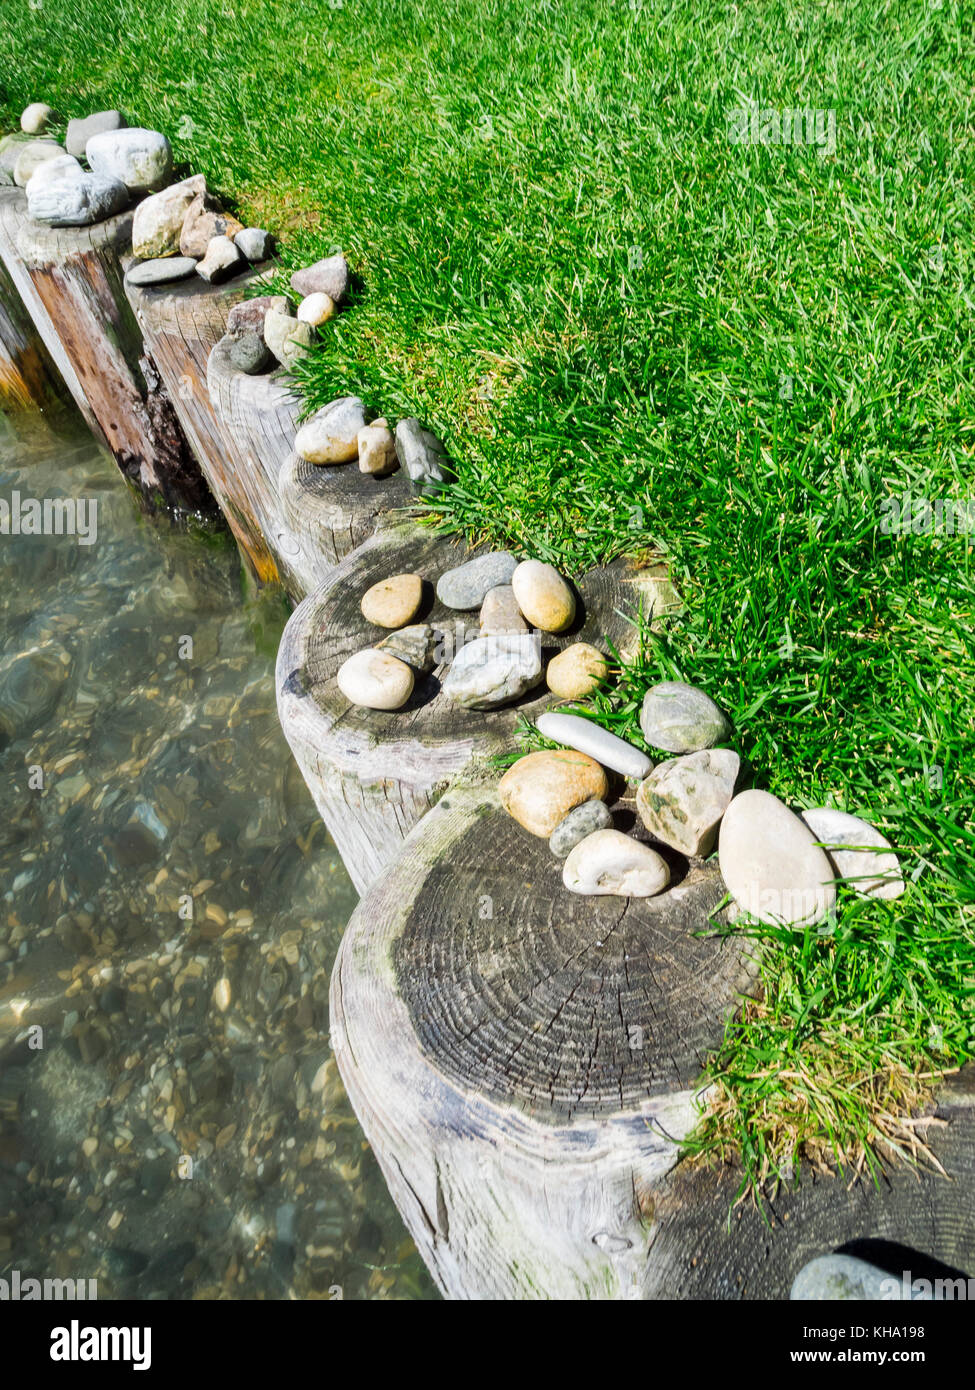 Elevated slanted view of a stone banked wooden bank attachment at Lake Kaltern - Stock Image